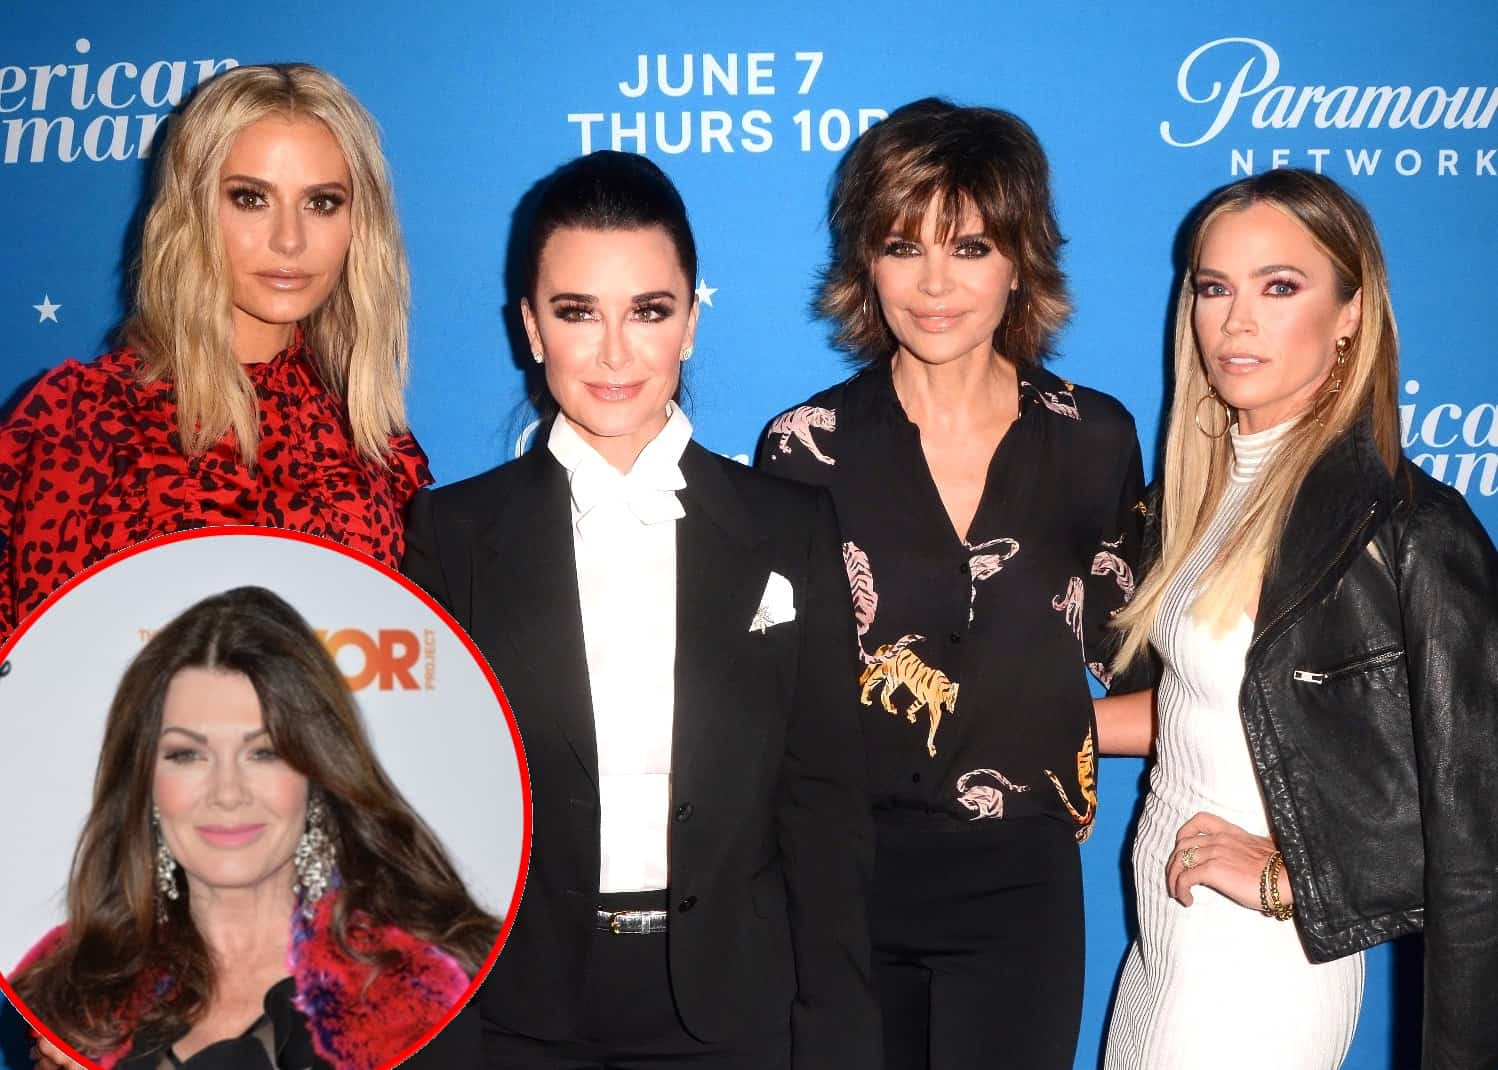 RHOBH Cast Enjoy Trip Without Lisa Vanderpump